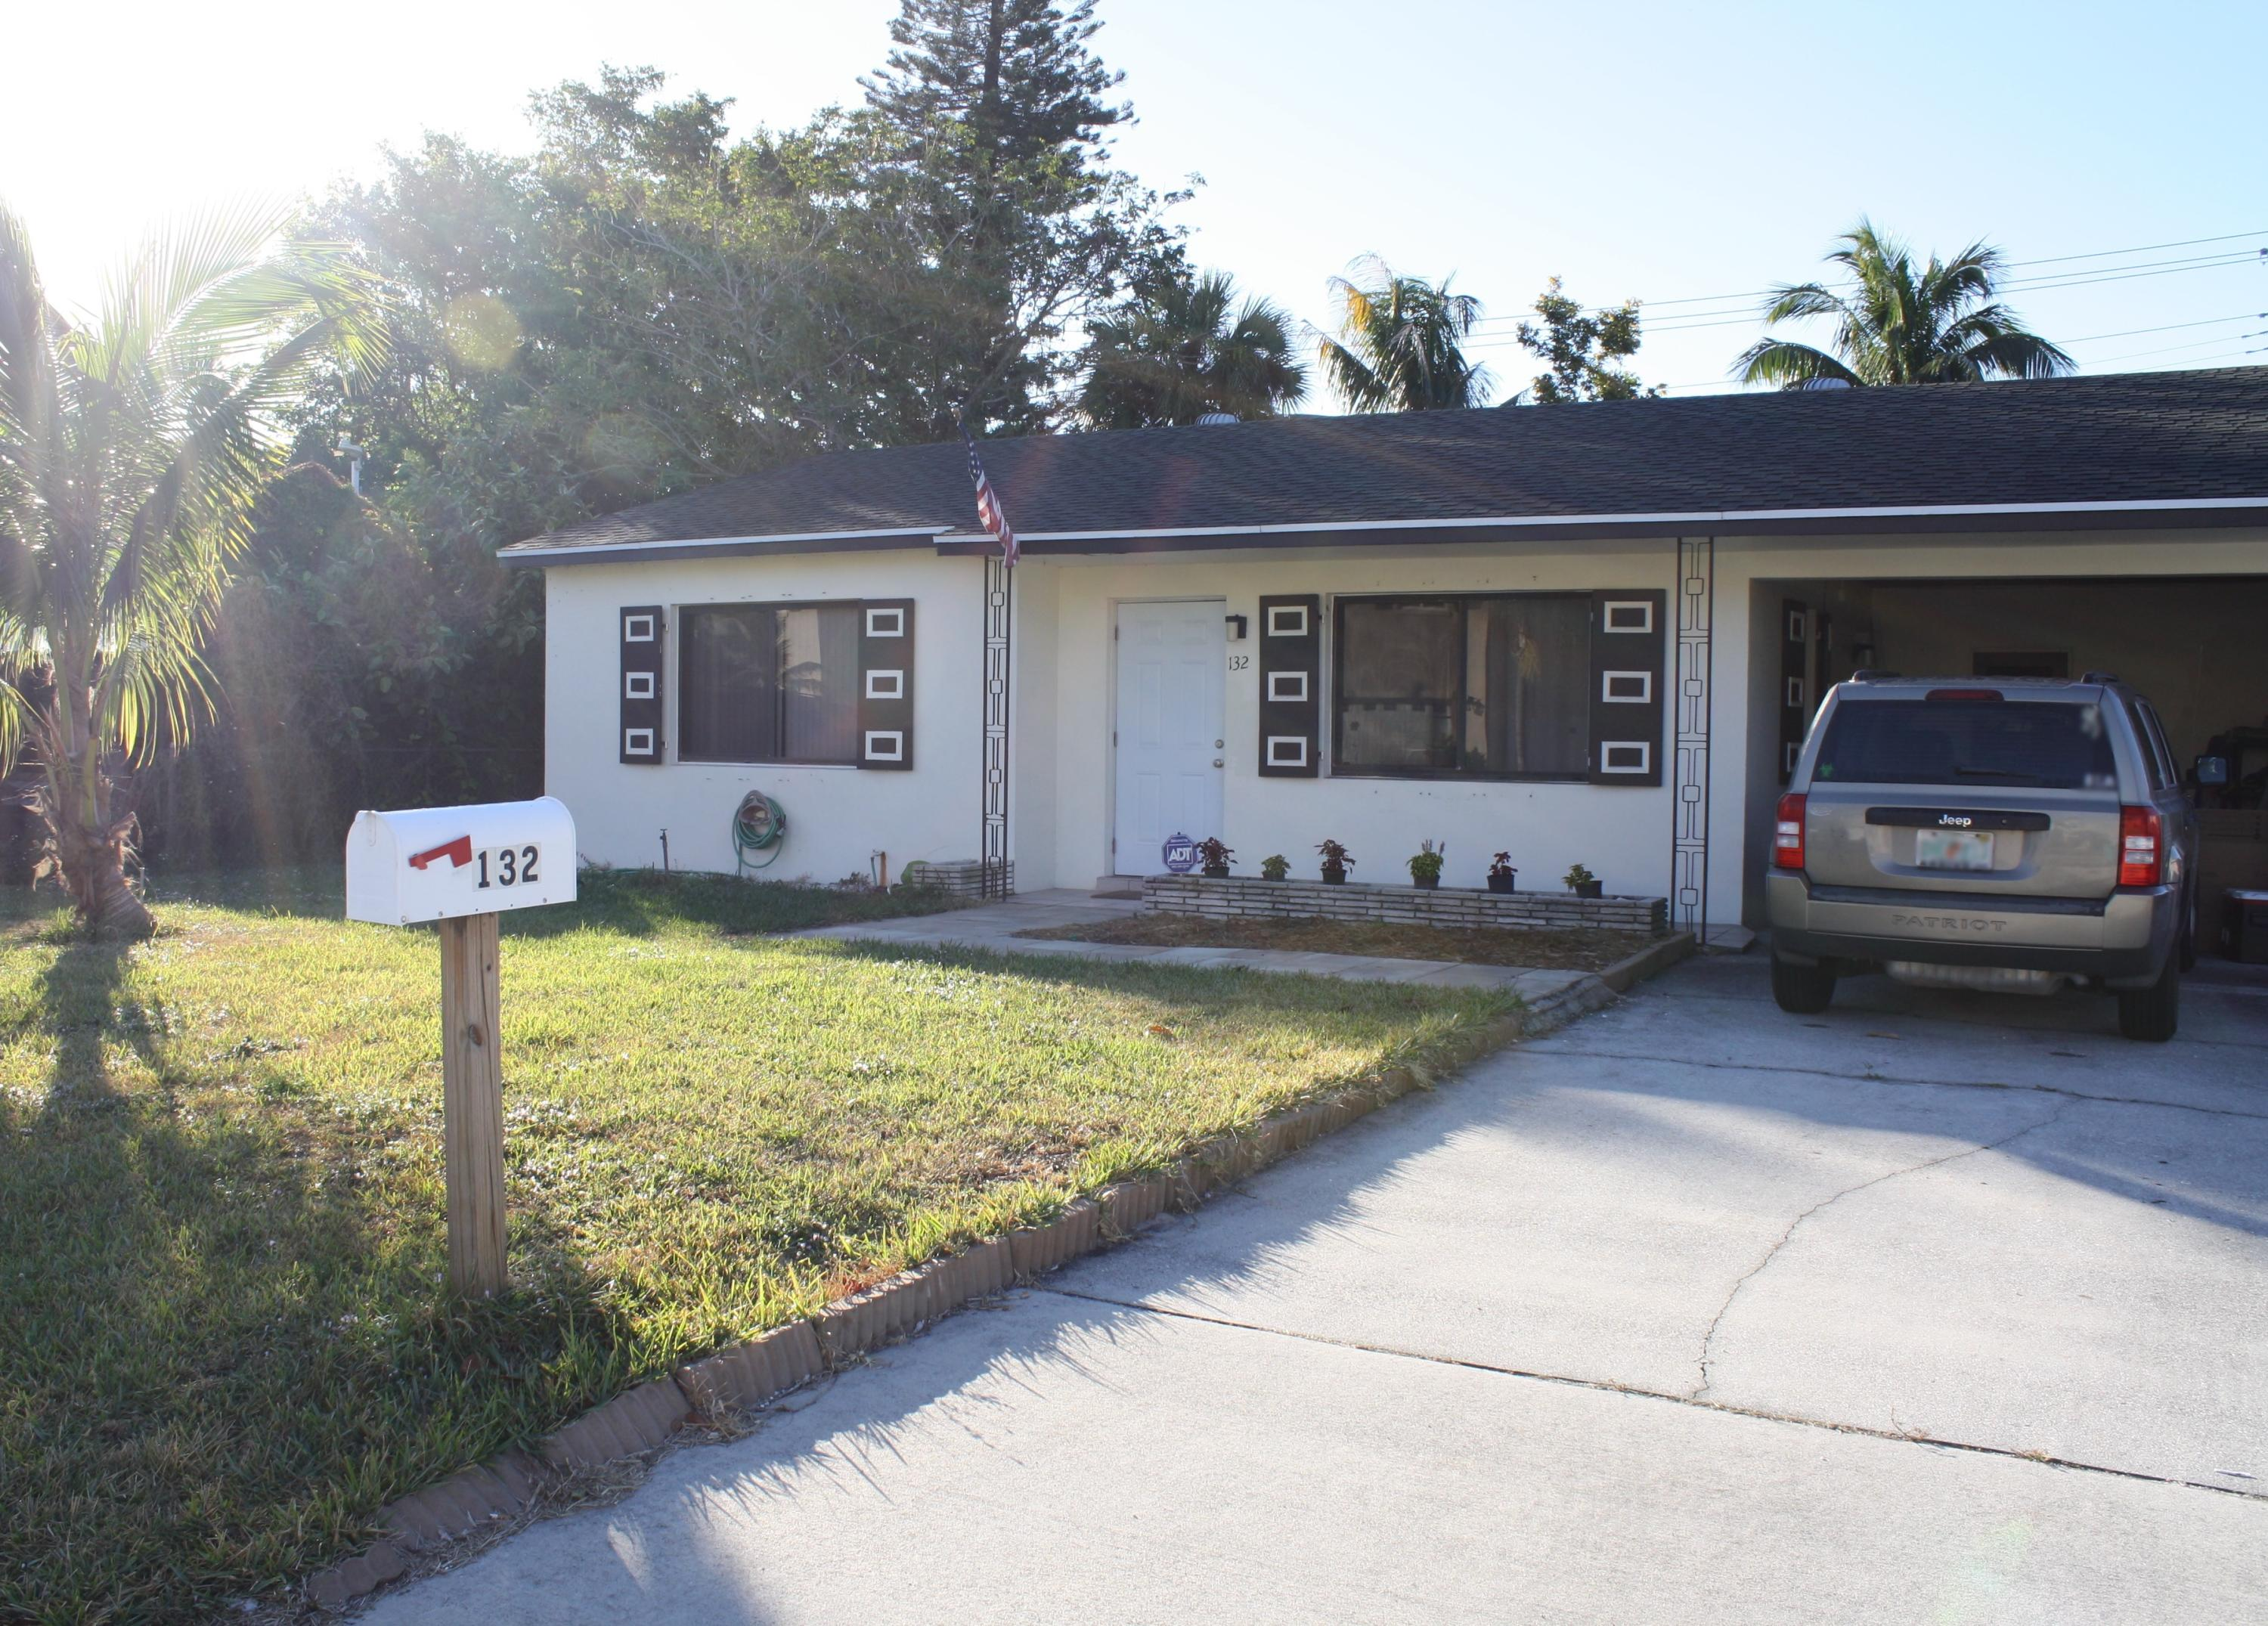 132 SW 2nd Avenue Avenue  Boynton Beach, FL 33435